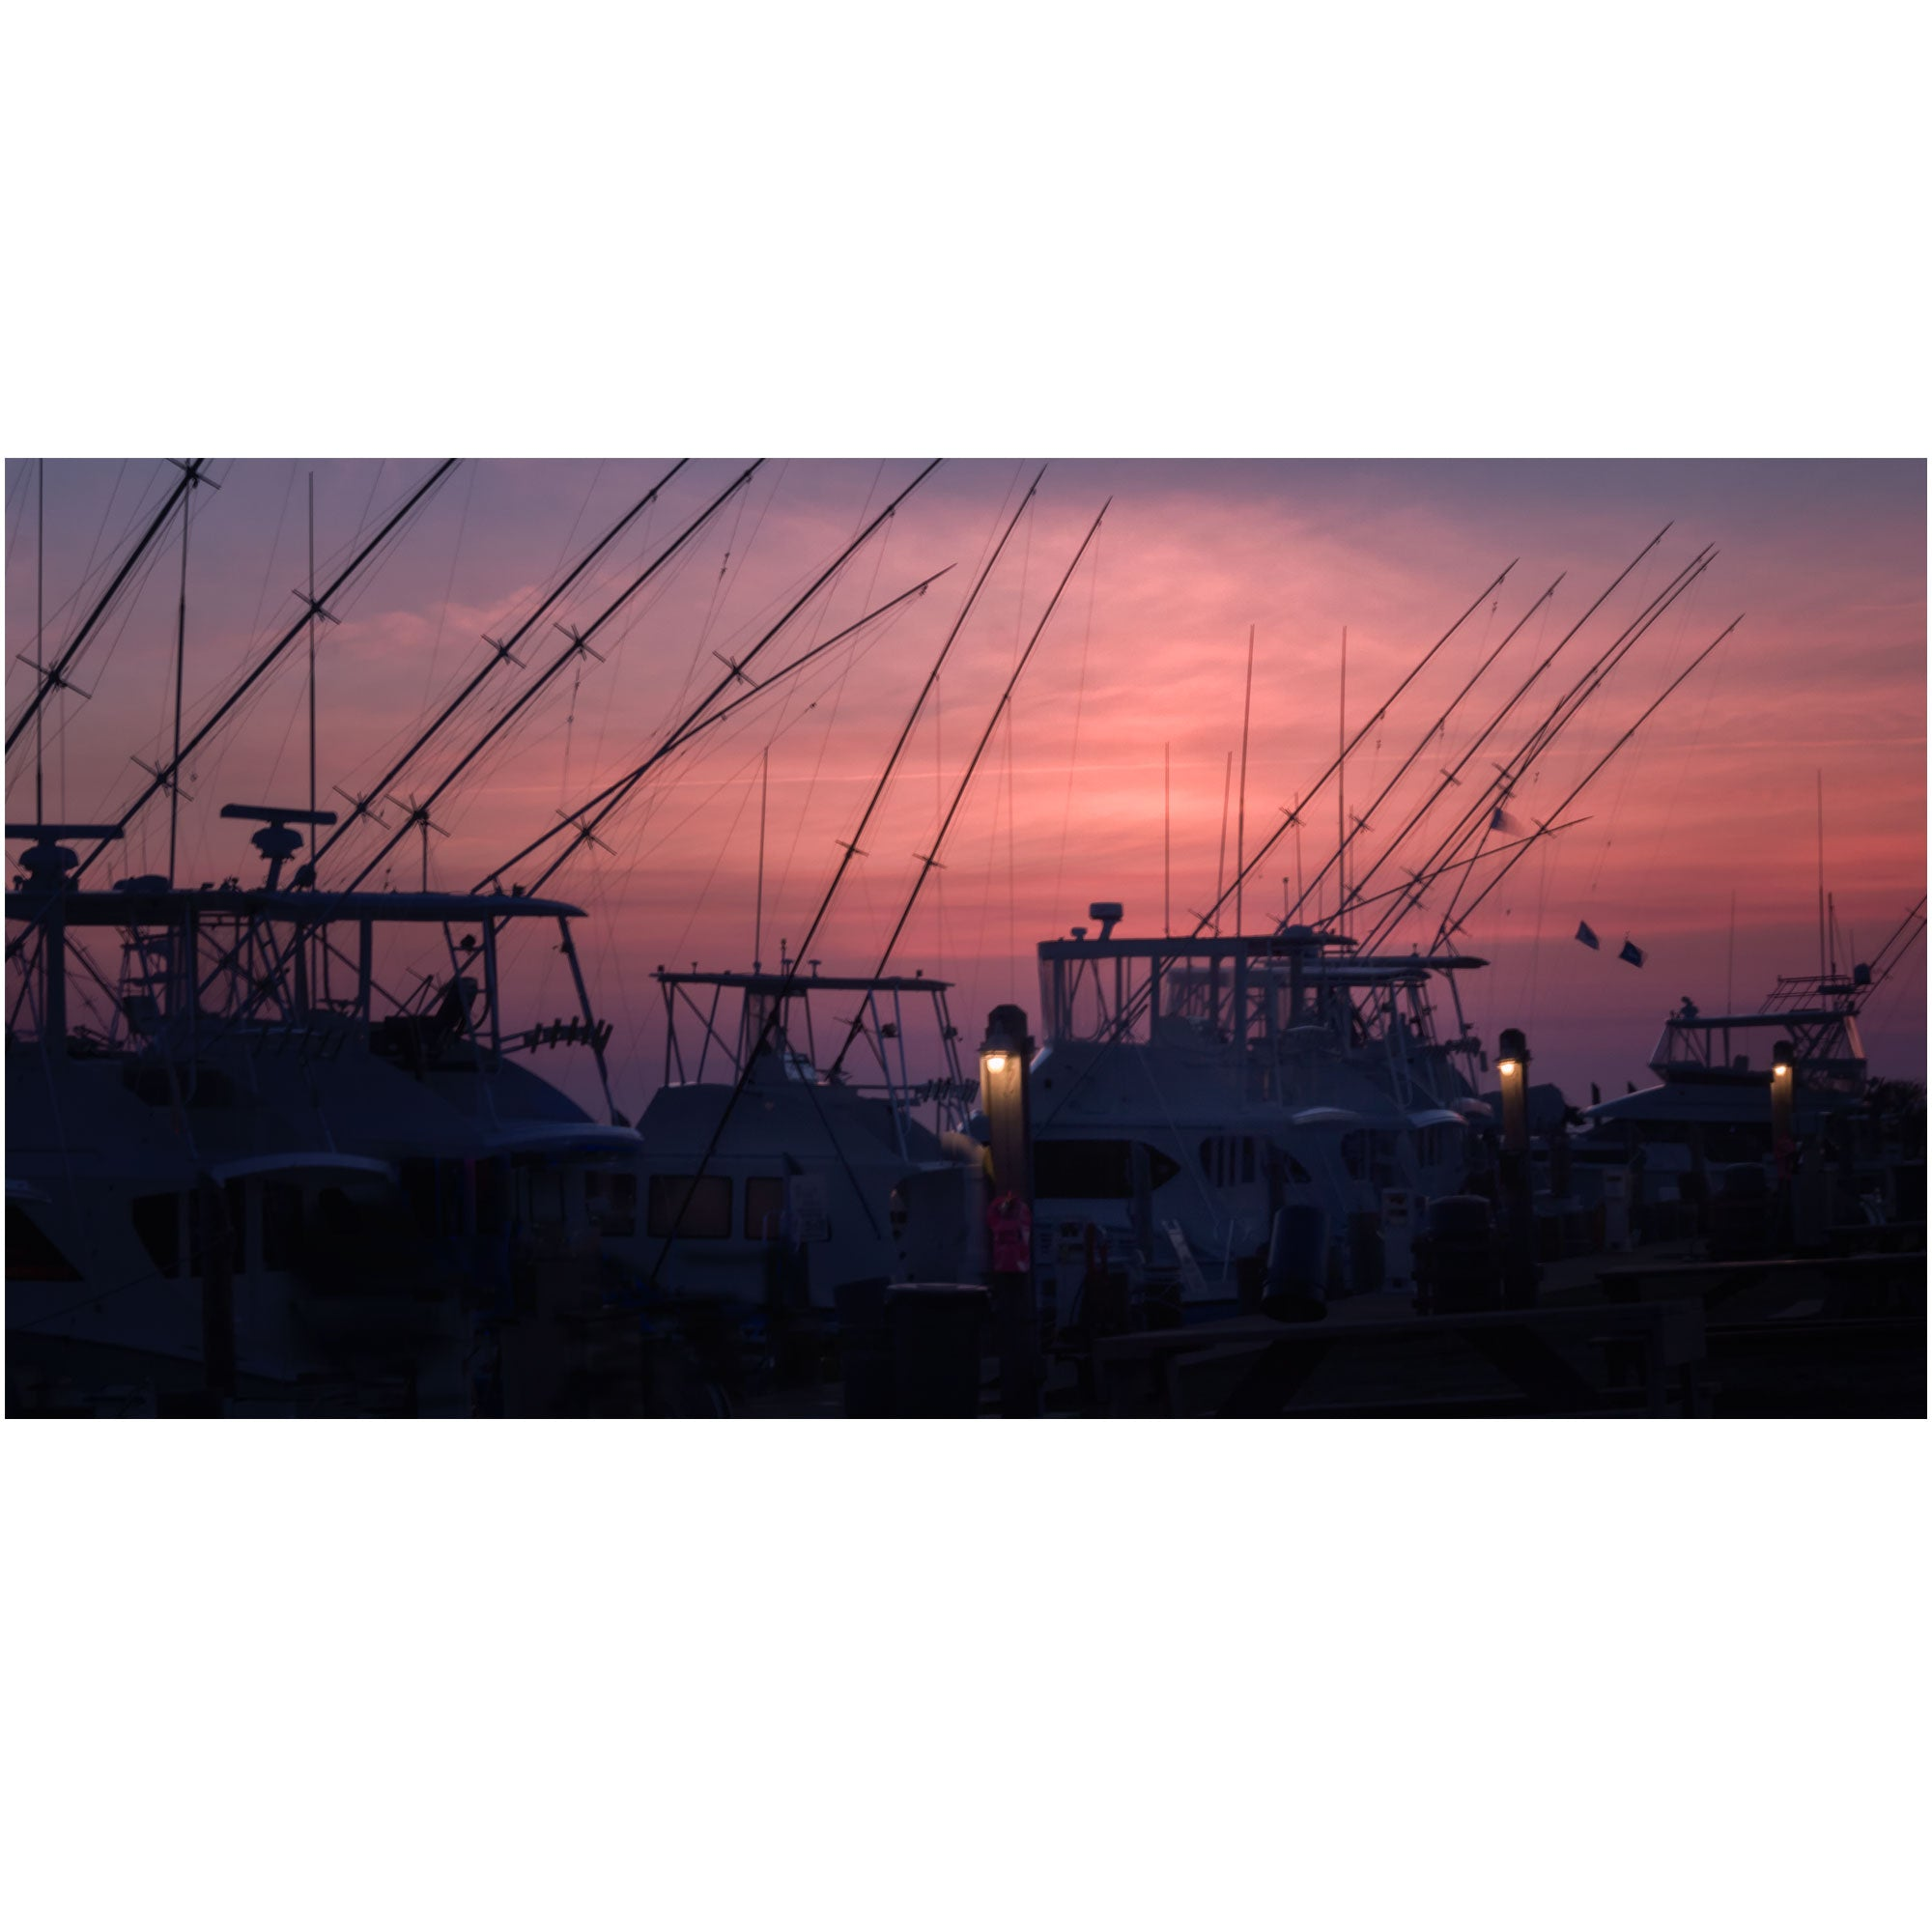 fishing boats docked at sunset in Pamlico Bay Outer Banks